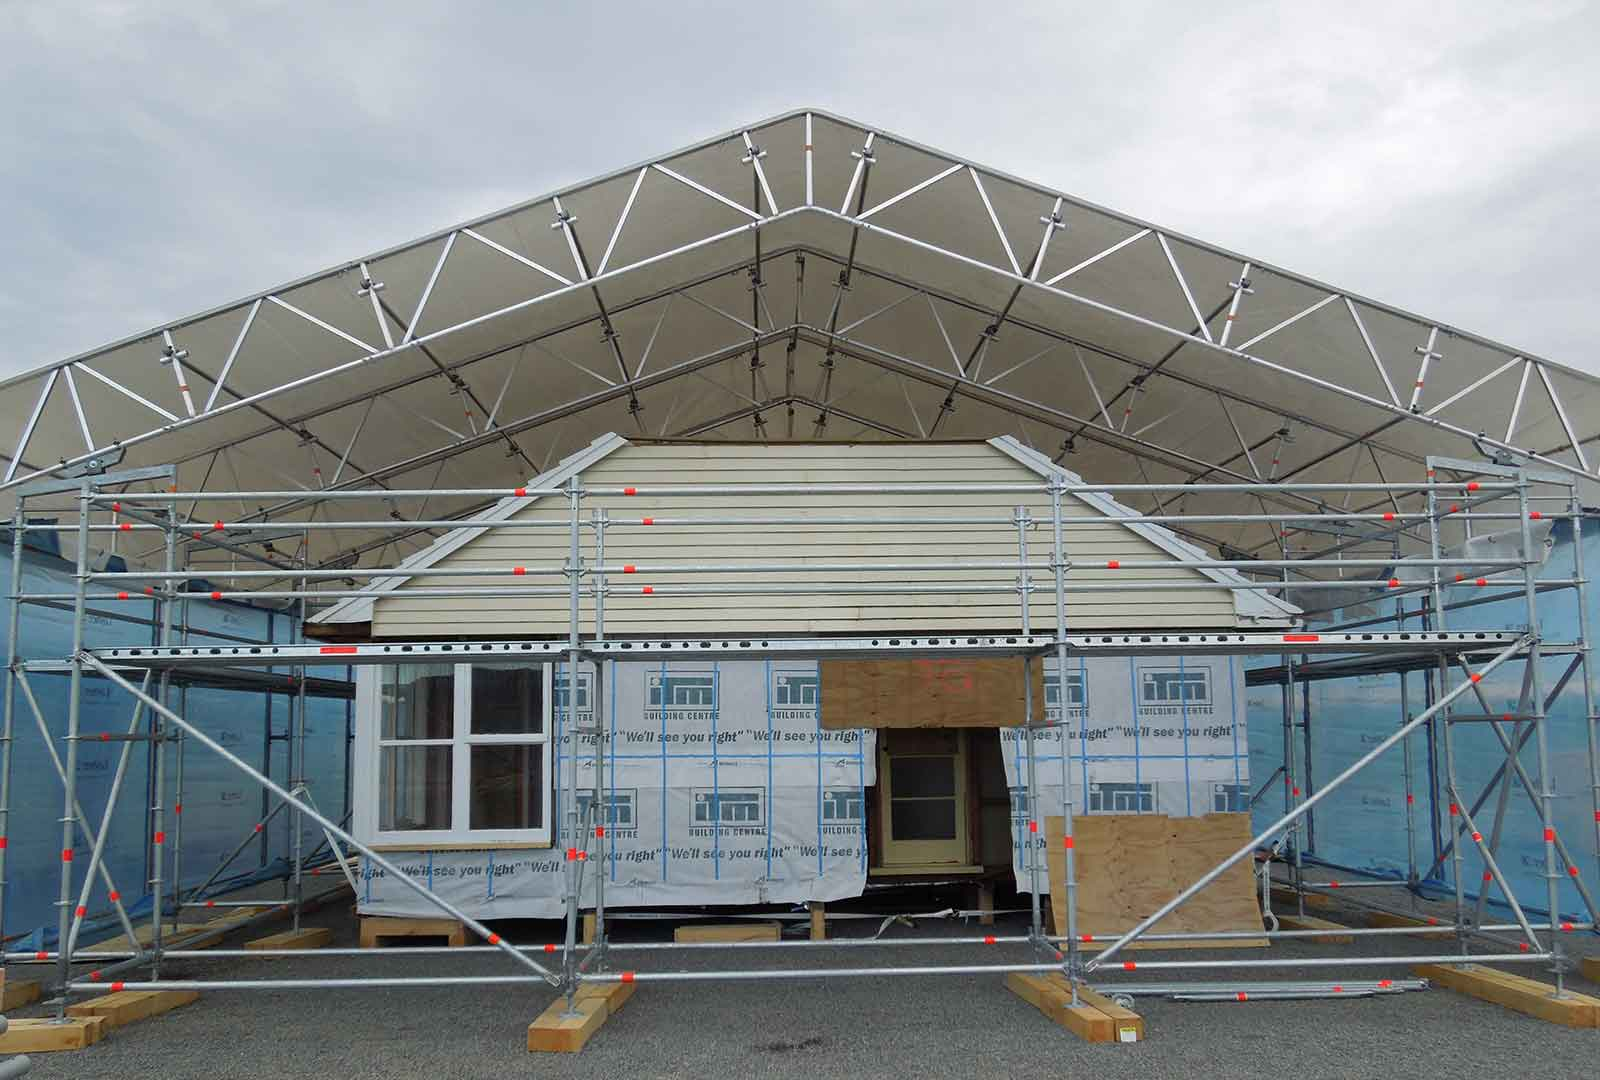 Layher Roof system provides environmental protection